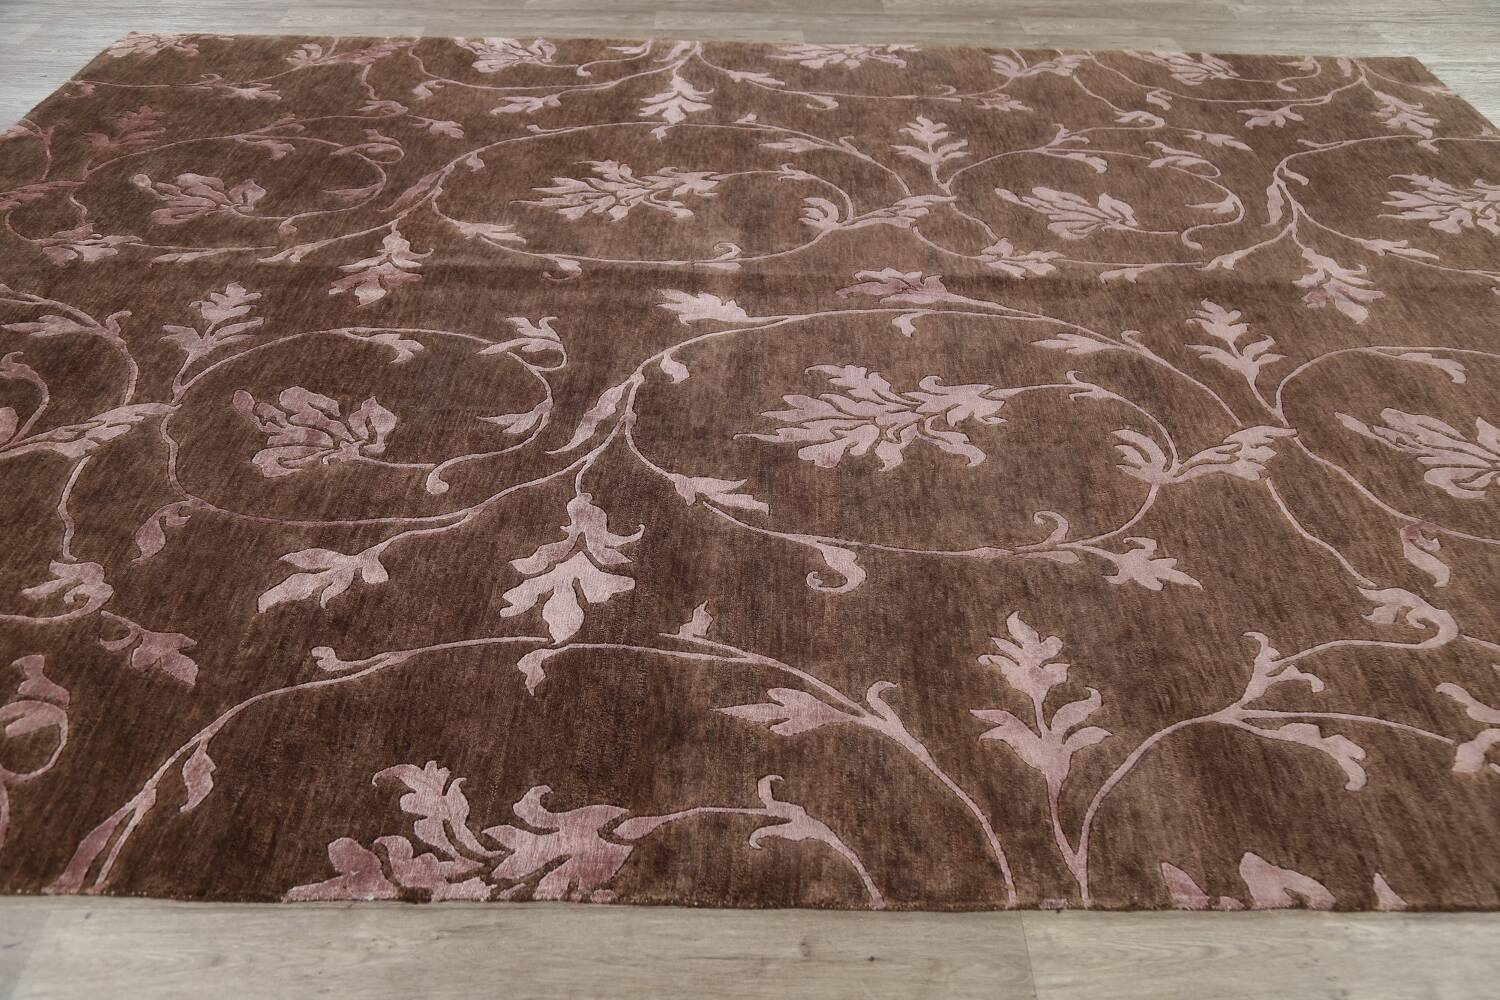 All-Over Floral Brown Art & Craft Oriental Area Rug 8x10 image 13